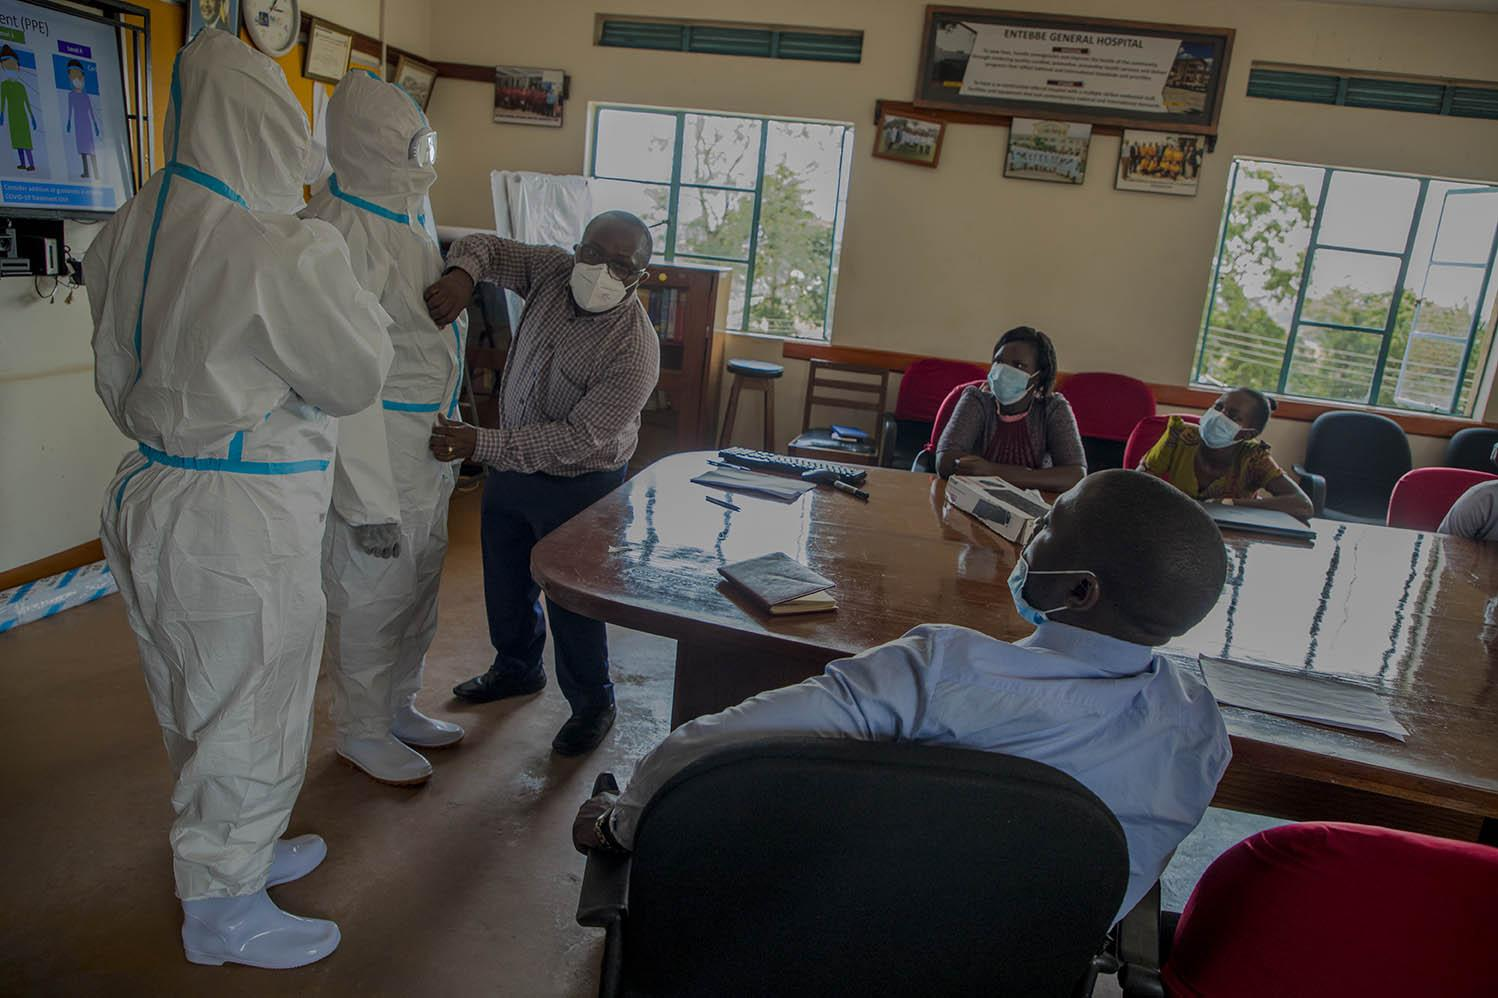 Volunteer medical workers at Entebbe General Hospital receiving training on how to use Personal Protective Equipment (PPE) while managing COVID-19 patients. Due to fear of catching the disease, many workers at the hospital withdrew from operating during this period  and the management embarked on training volunteers to have more staff support.